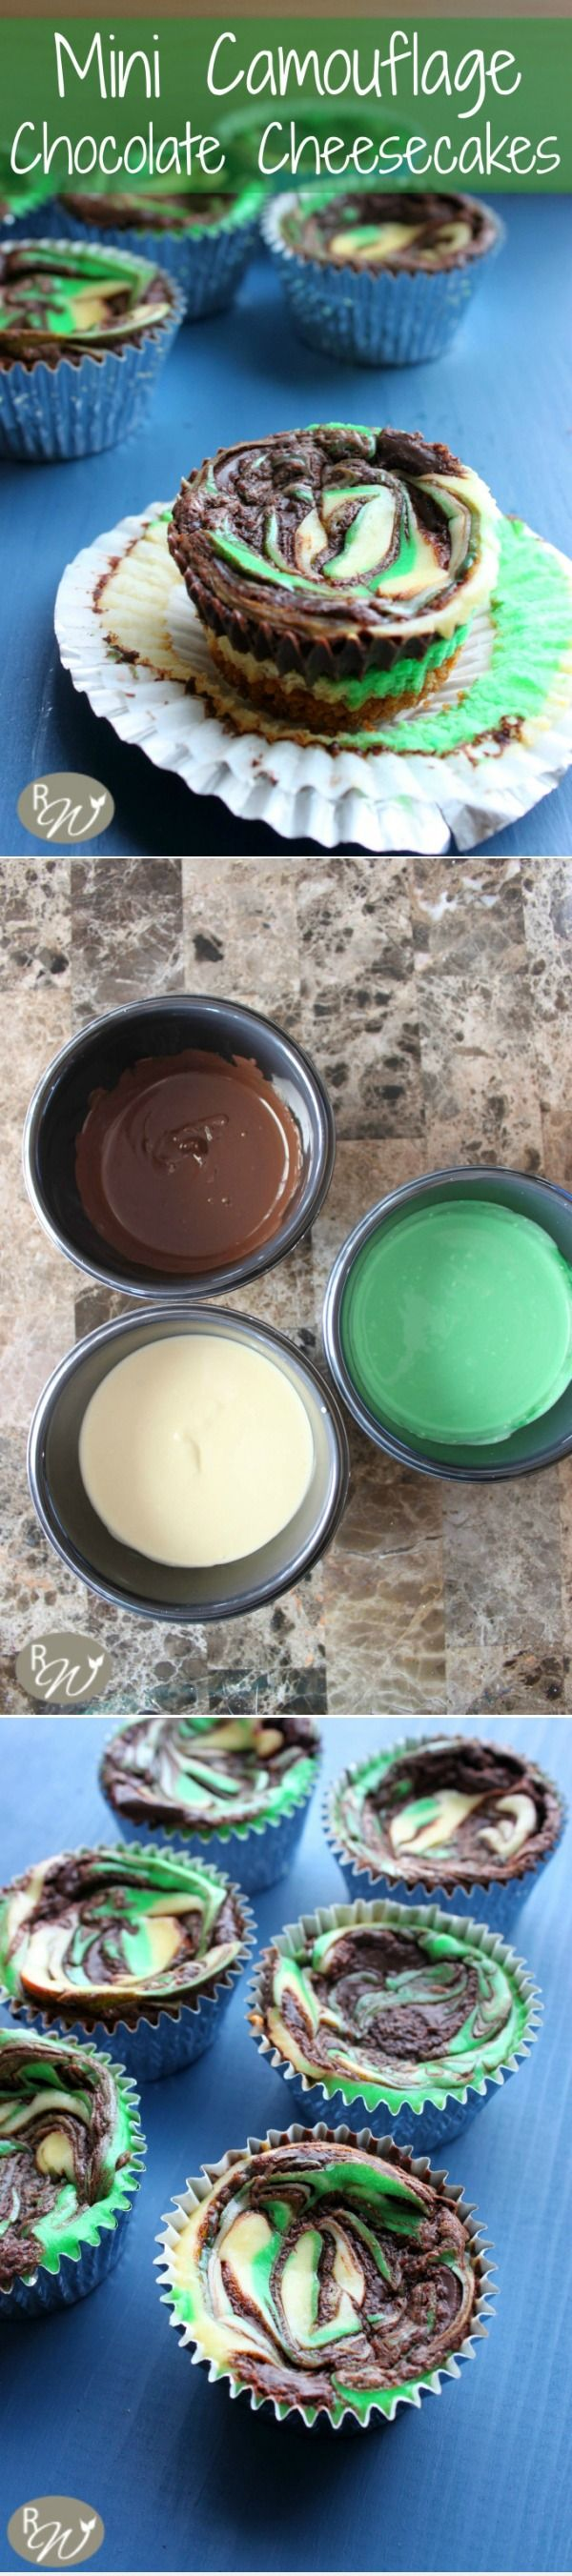 Mini Camouflage Chocolate Cheesecakes | therusticwillow.com